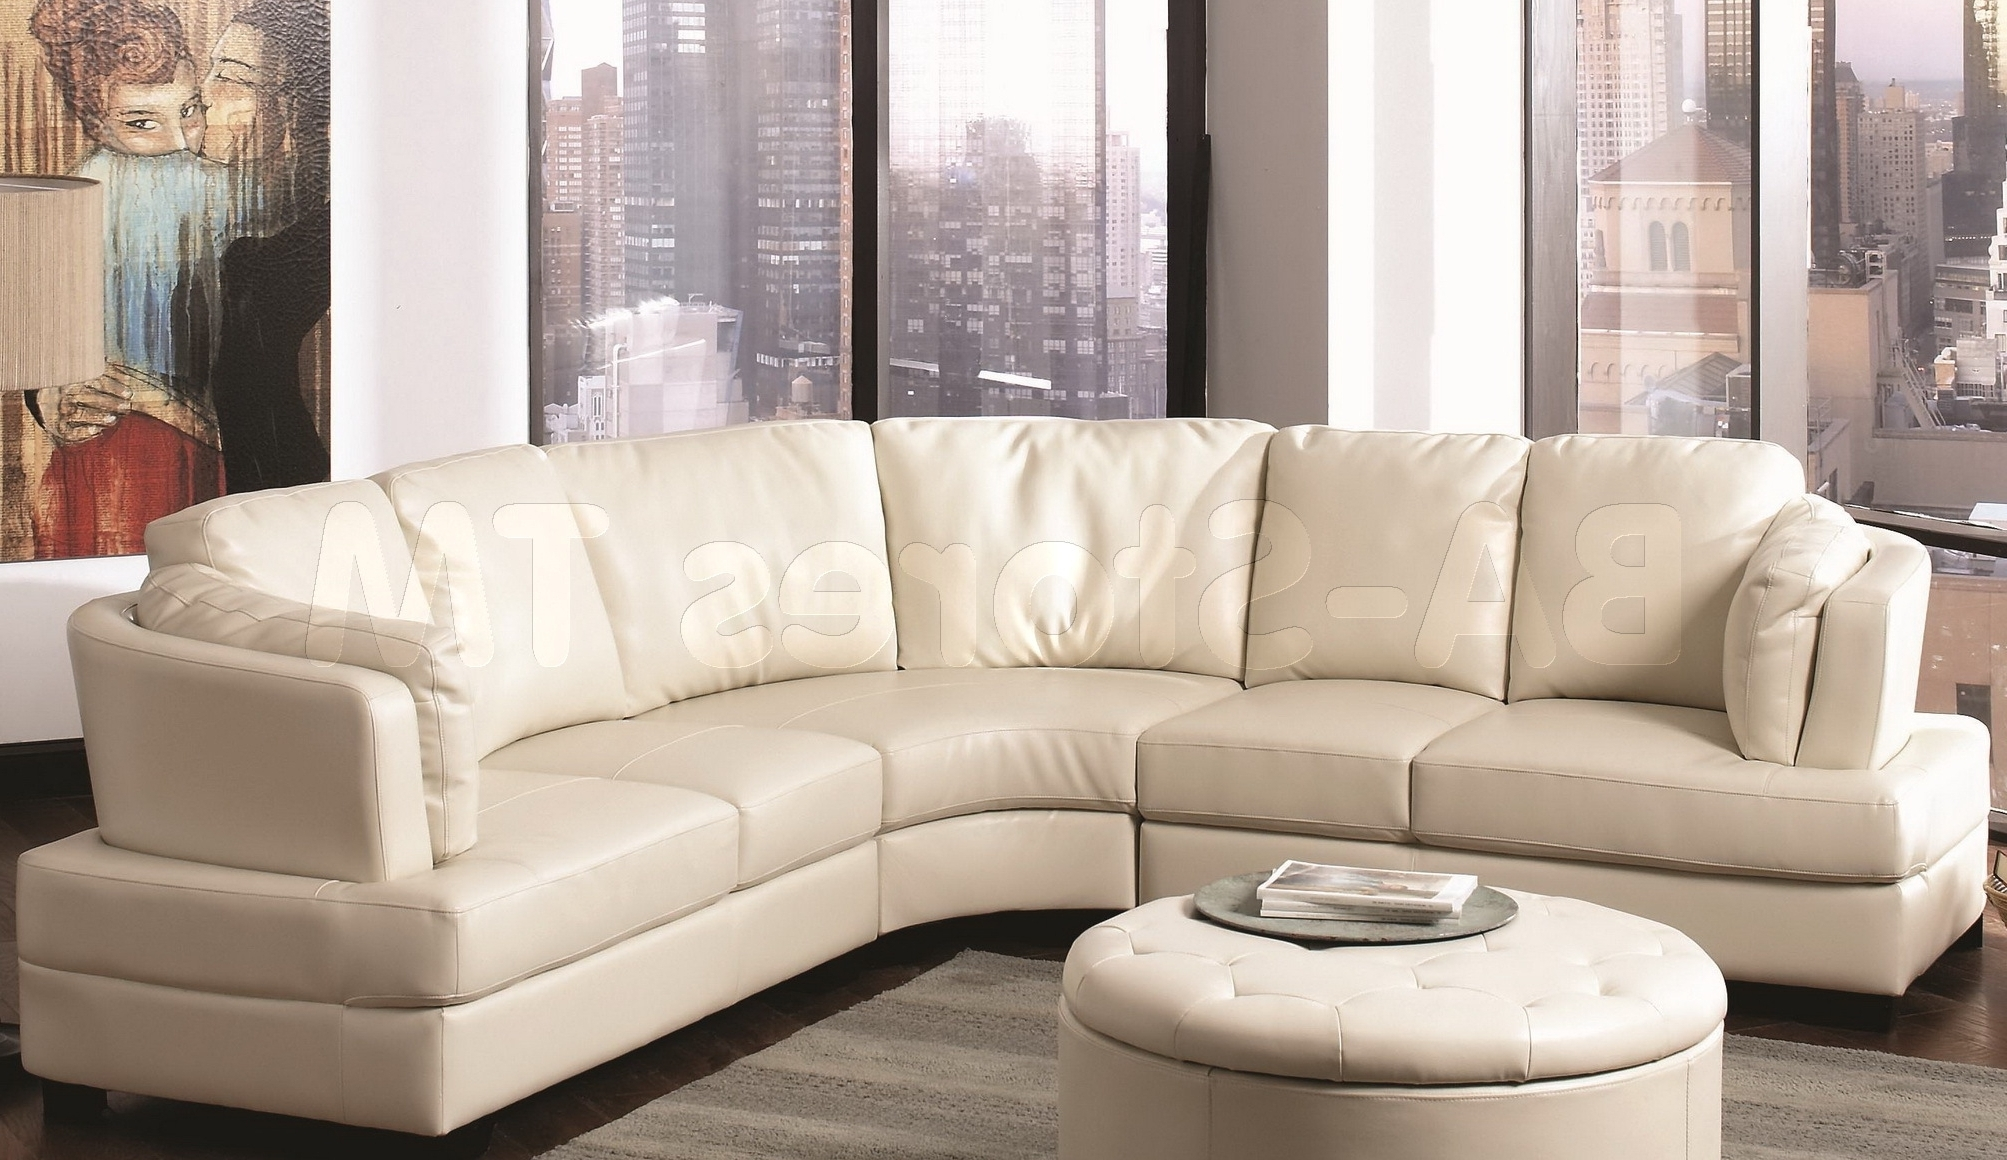 Collection Sectional Sofas Rochester Ny – Mediasupload Inside Well Known Rochester Ny Sectional Sofas (View 4 of 15)